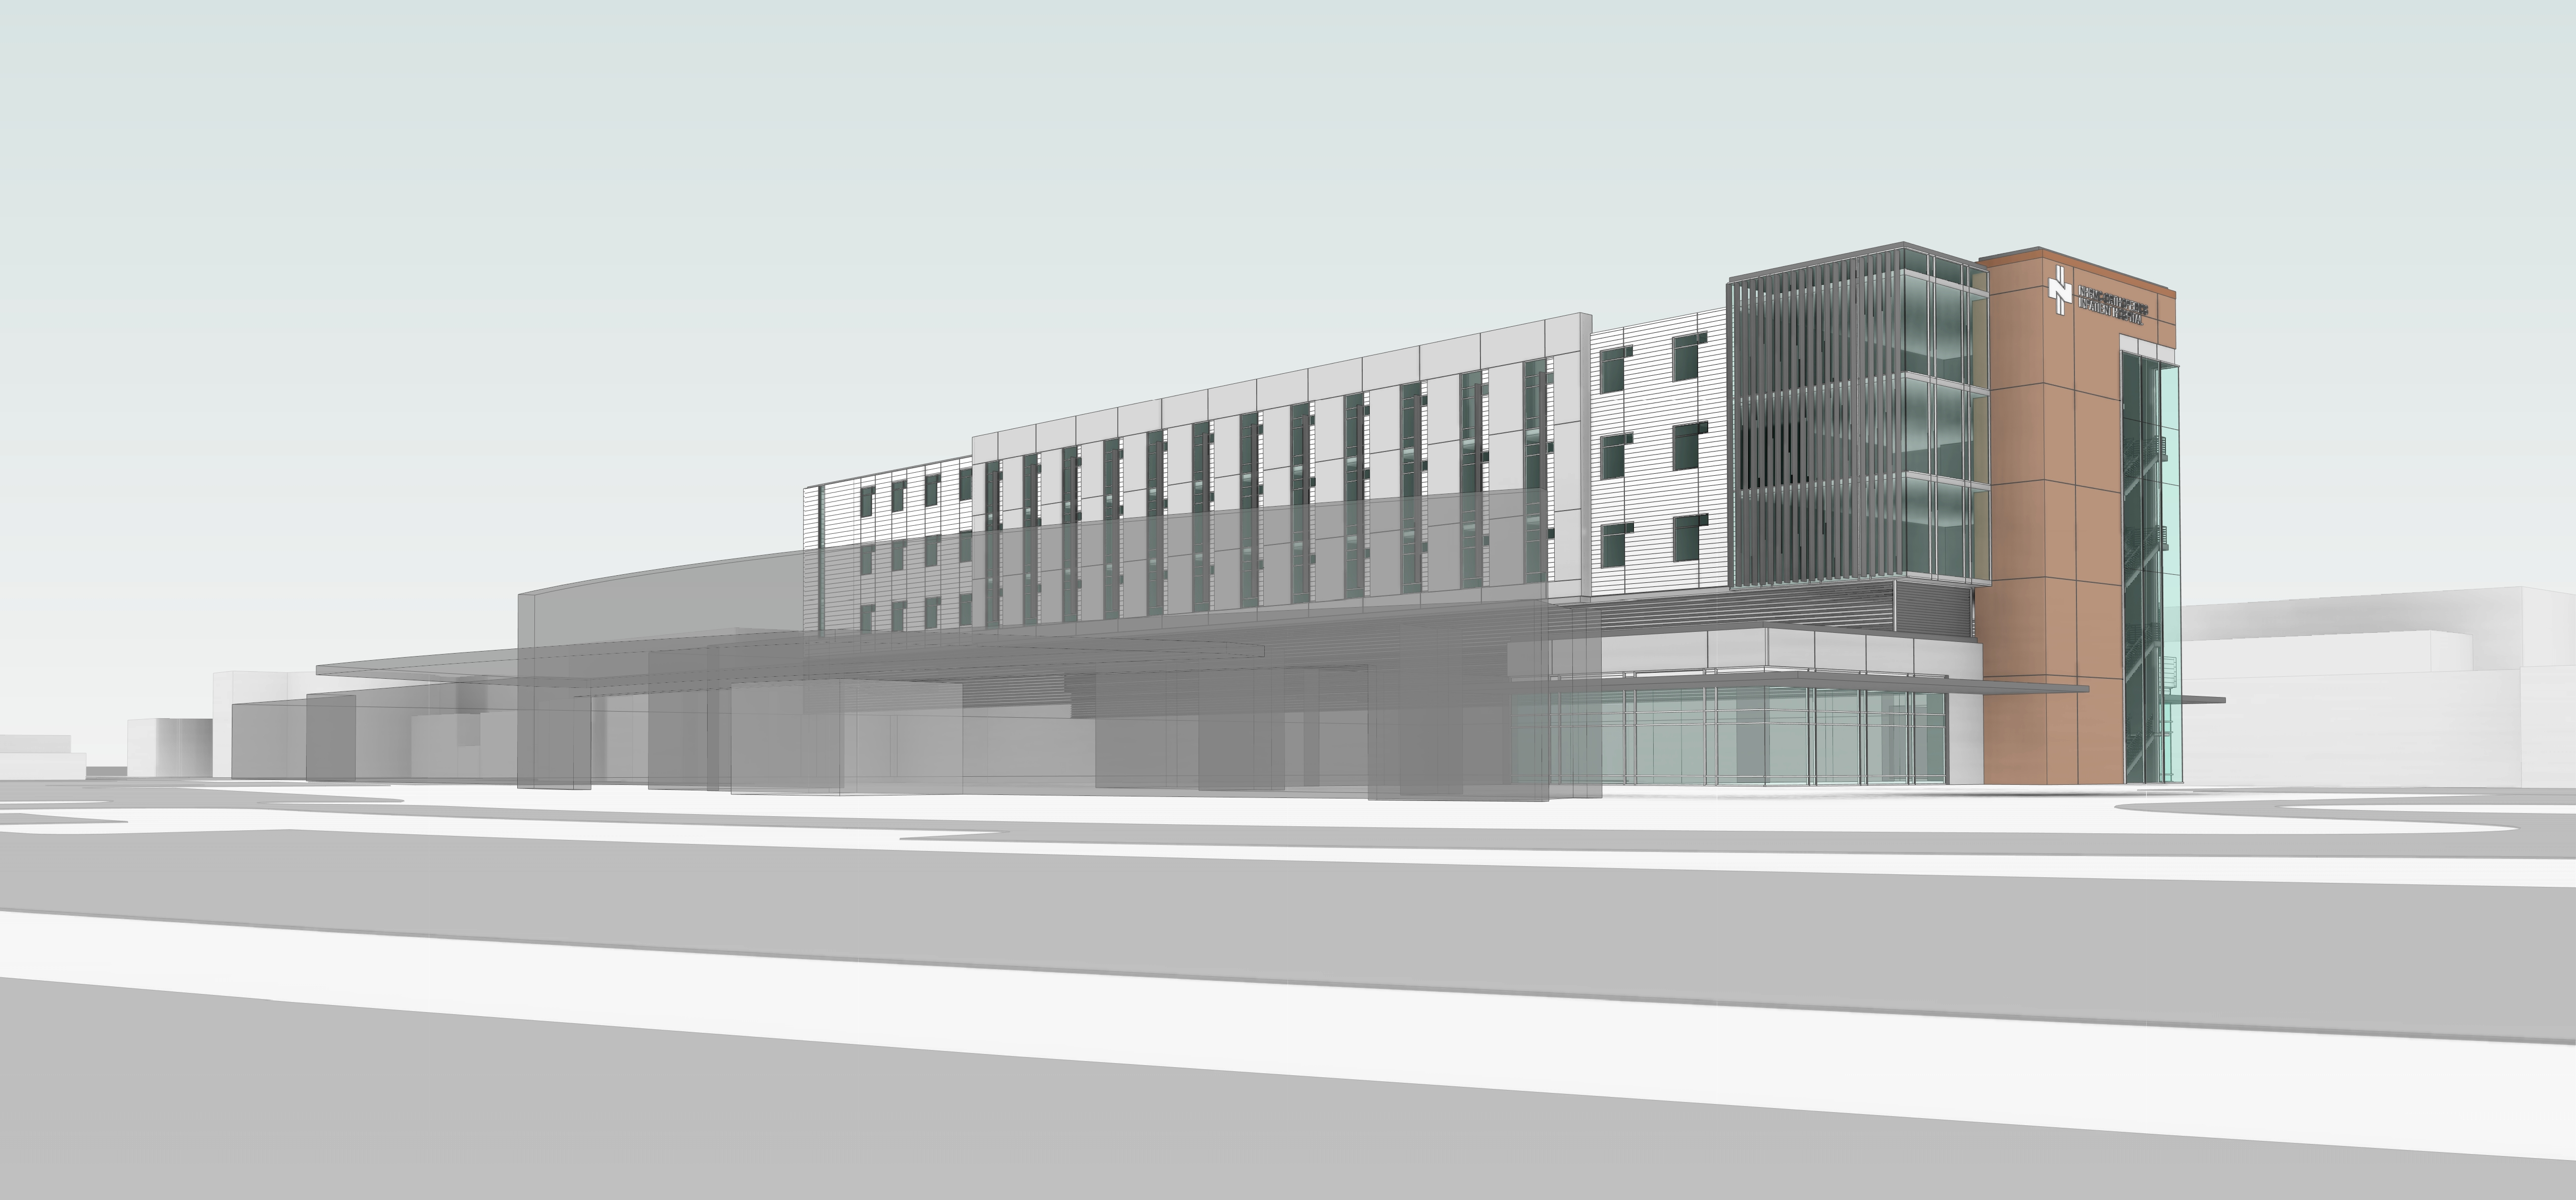 NHRMC Orthopedic Hospital Rendering